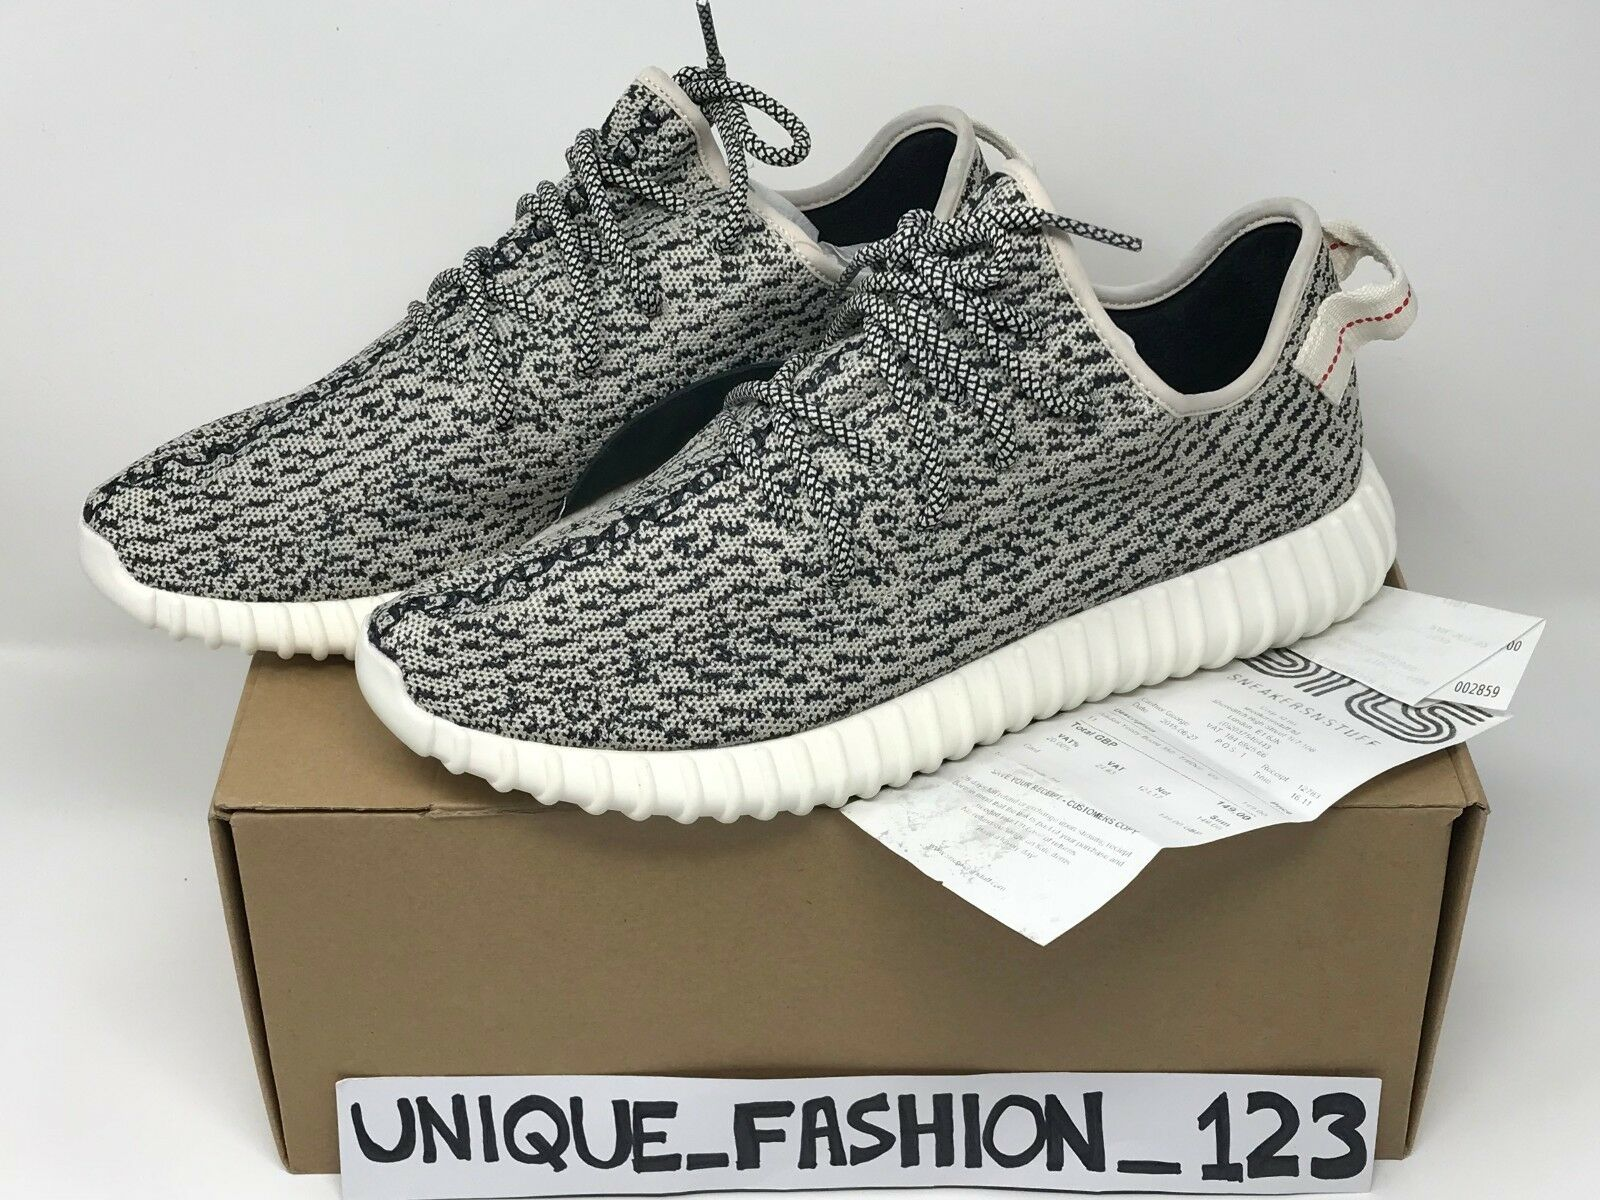 best website 8cf45 c85ed ADIDAS YEEZY BOOST 350 LOW US 1110.5 45.5 TURTLE DOVE V1 2018 OG AQ4832 V2